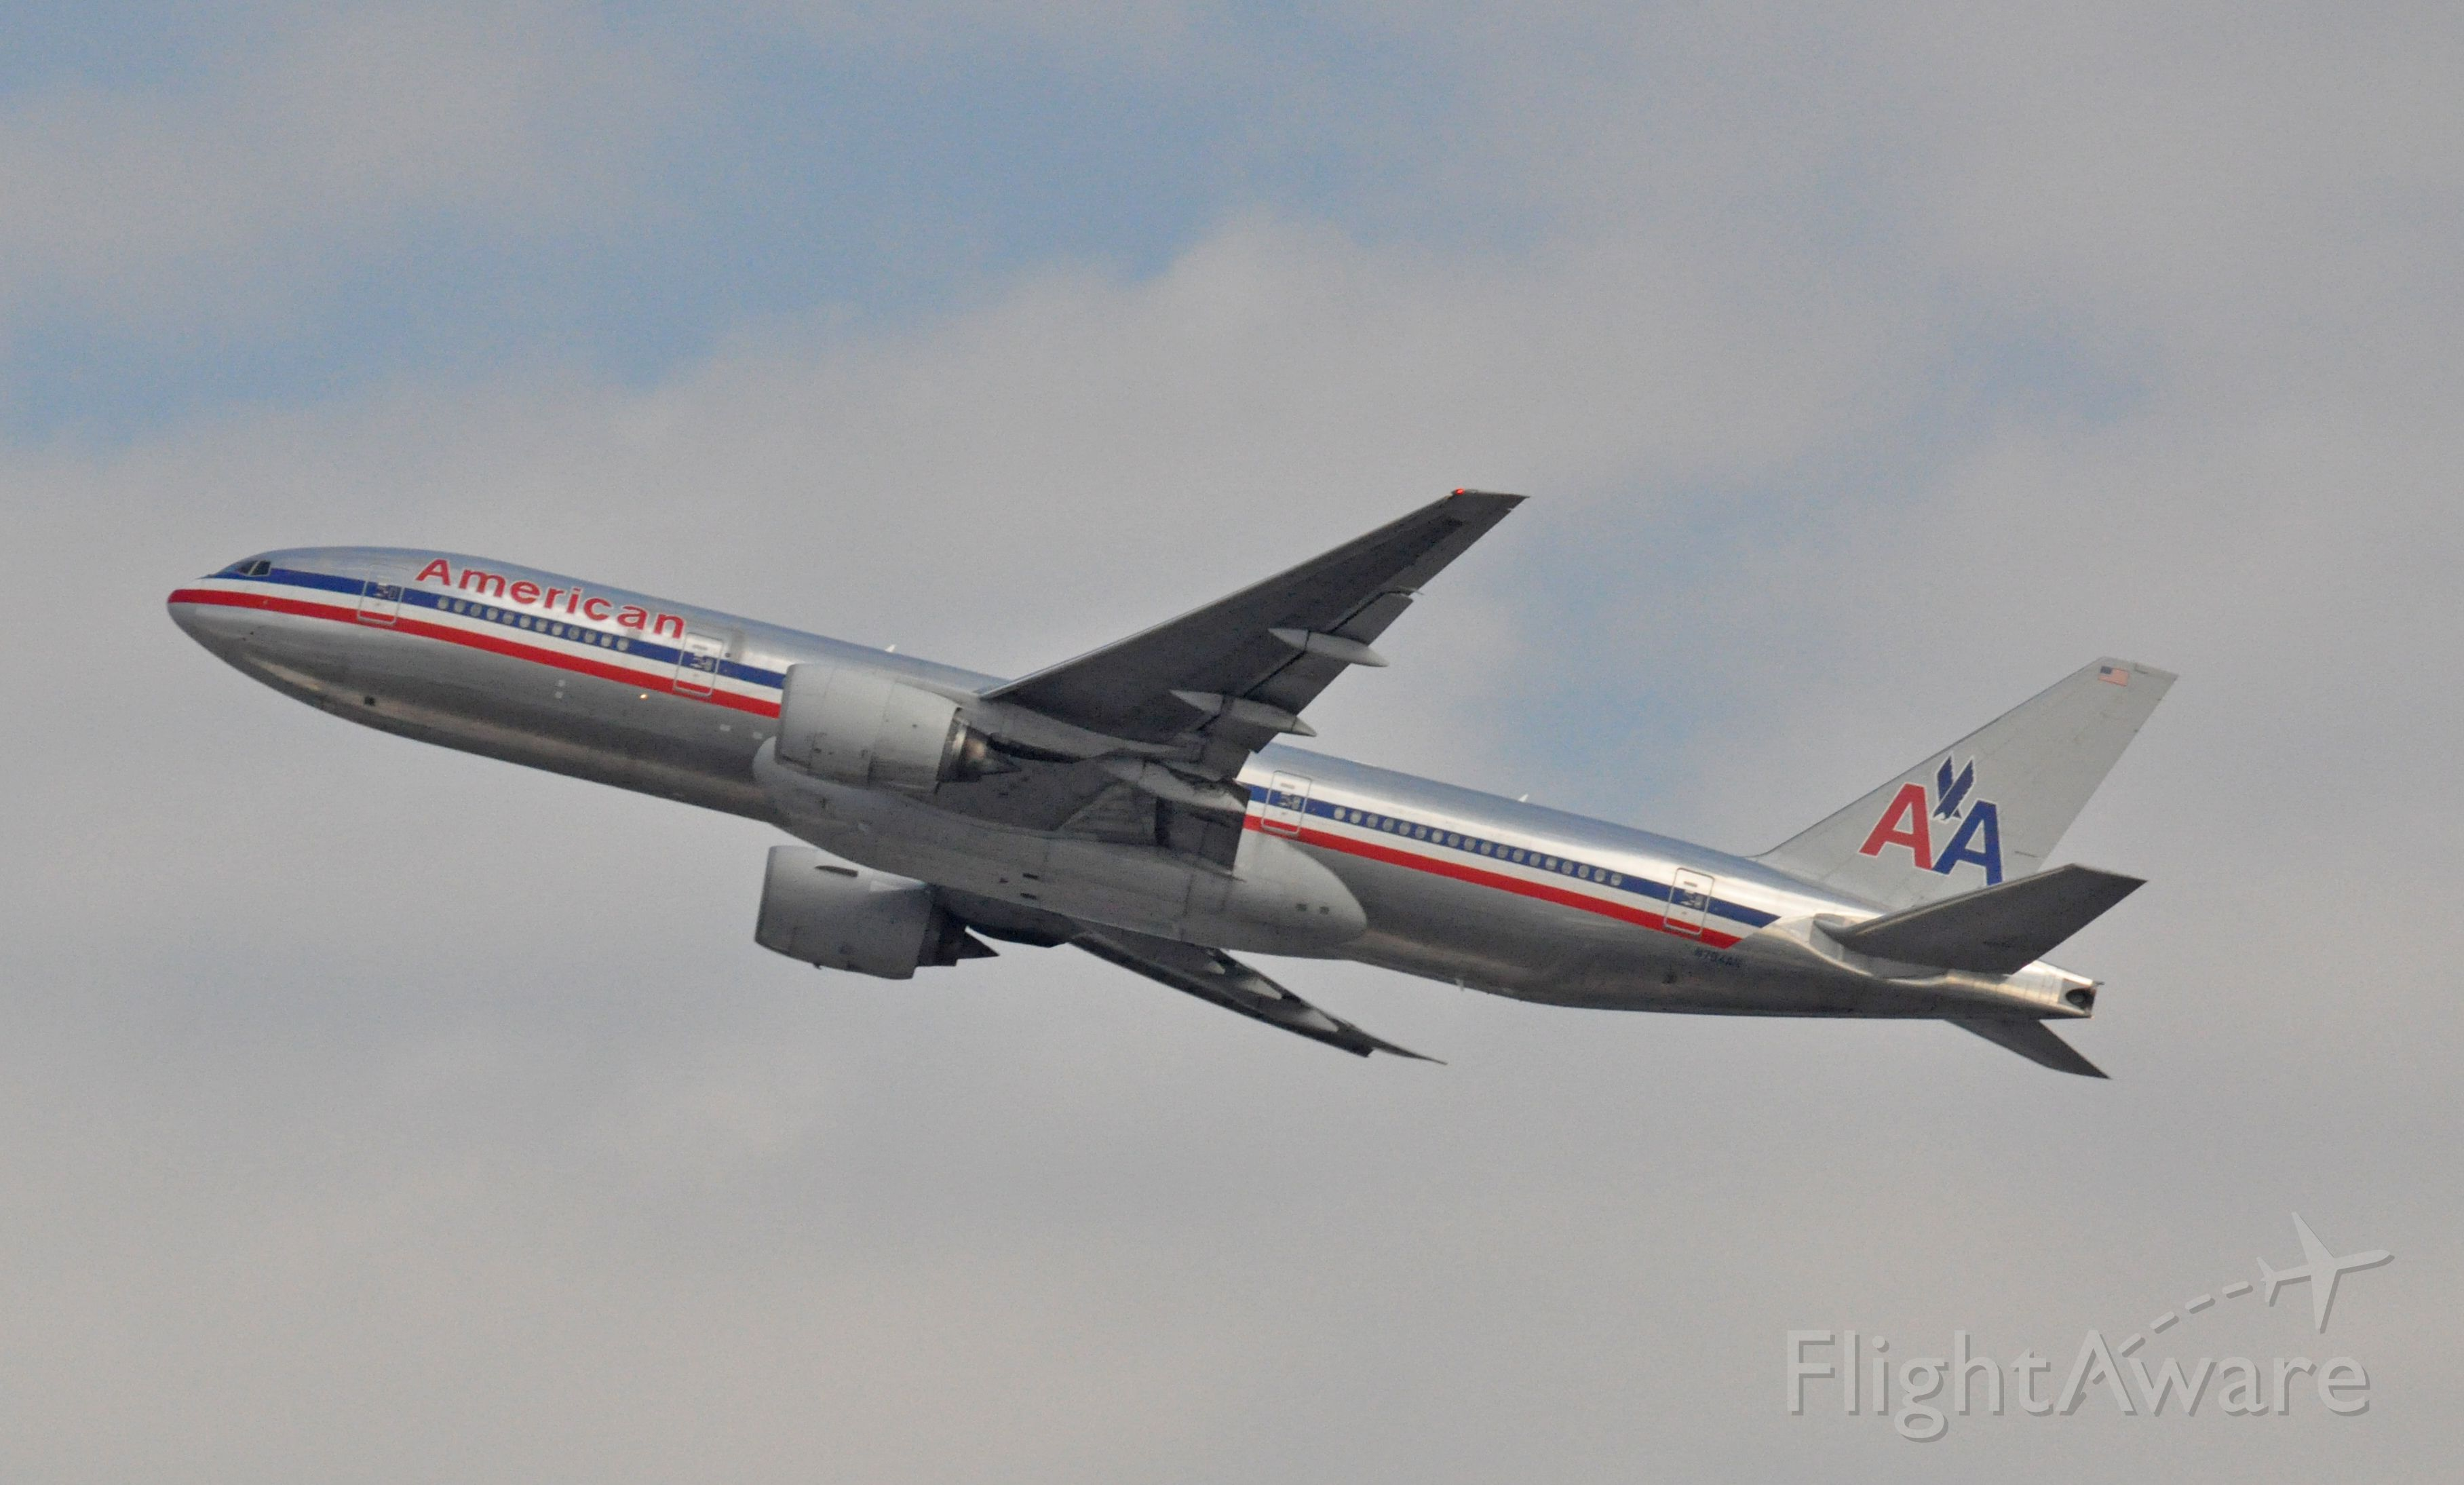 Boeing 777-200 (N794AN) - Imaged on 1/13/12